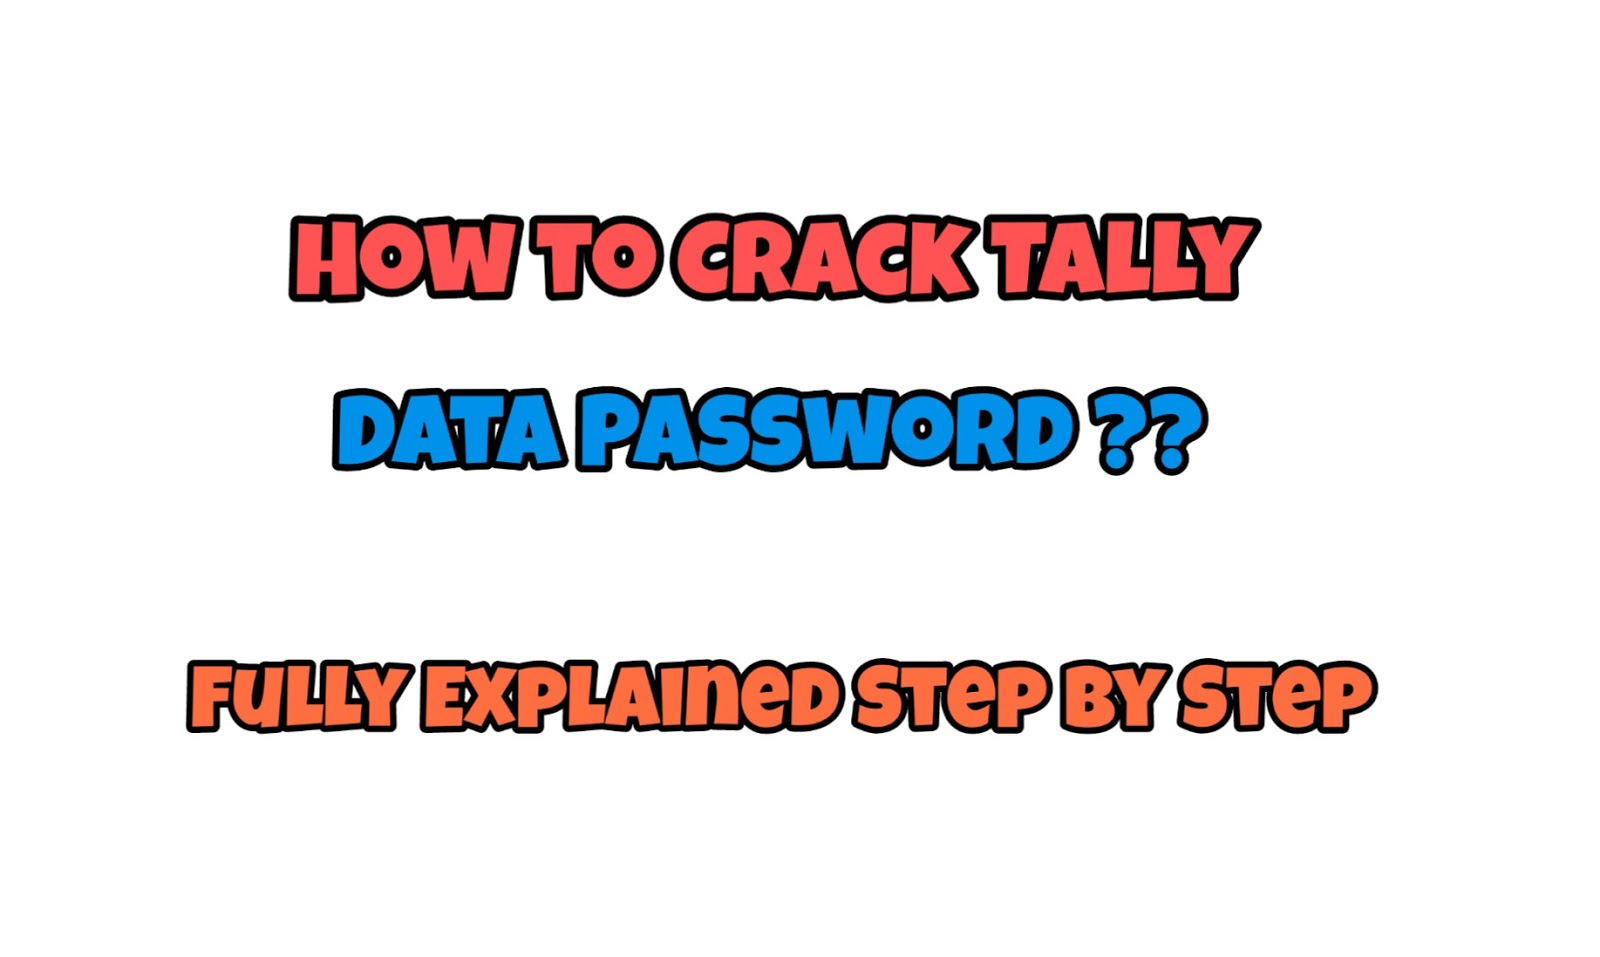 How to Crack Tally Data Password ?